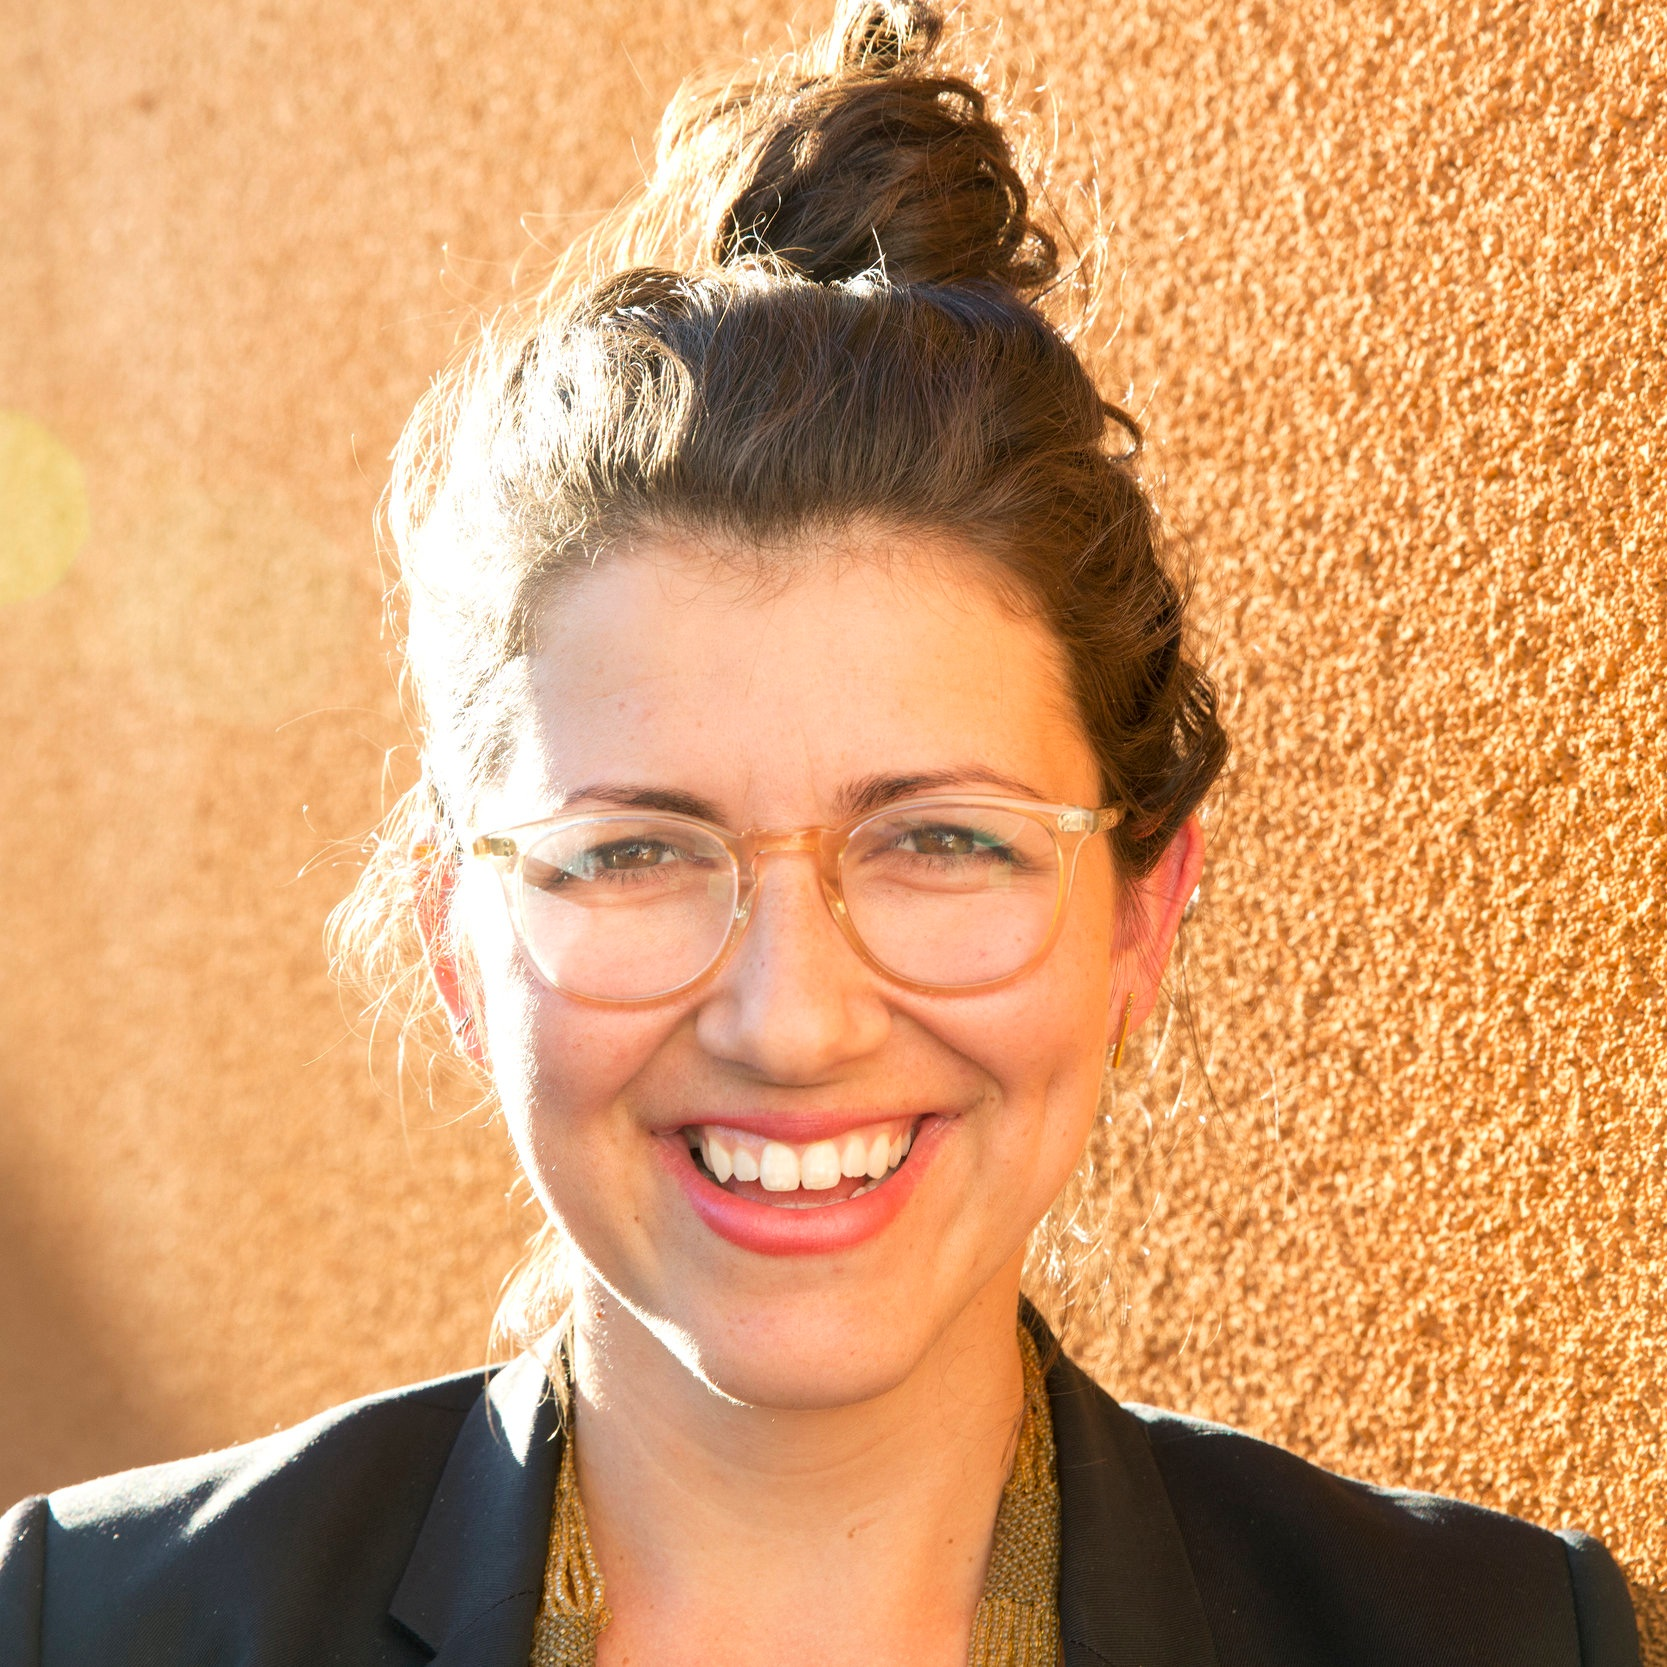 Rebecca Lehrer , Co-founder and CEO of The Mash-Up Americans